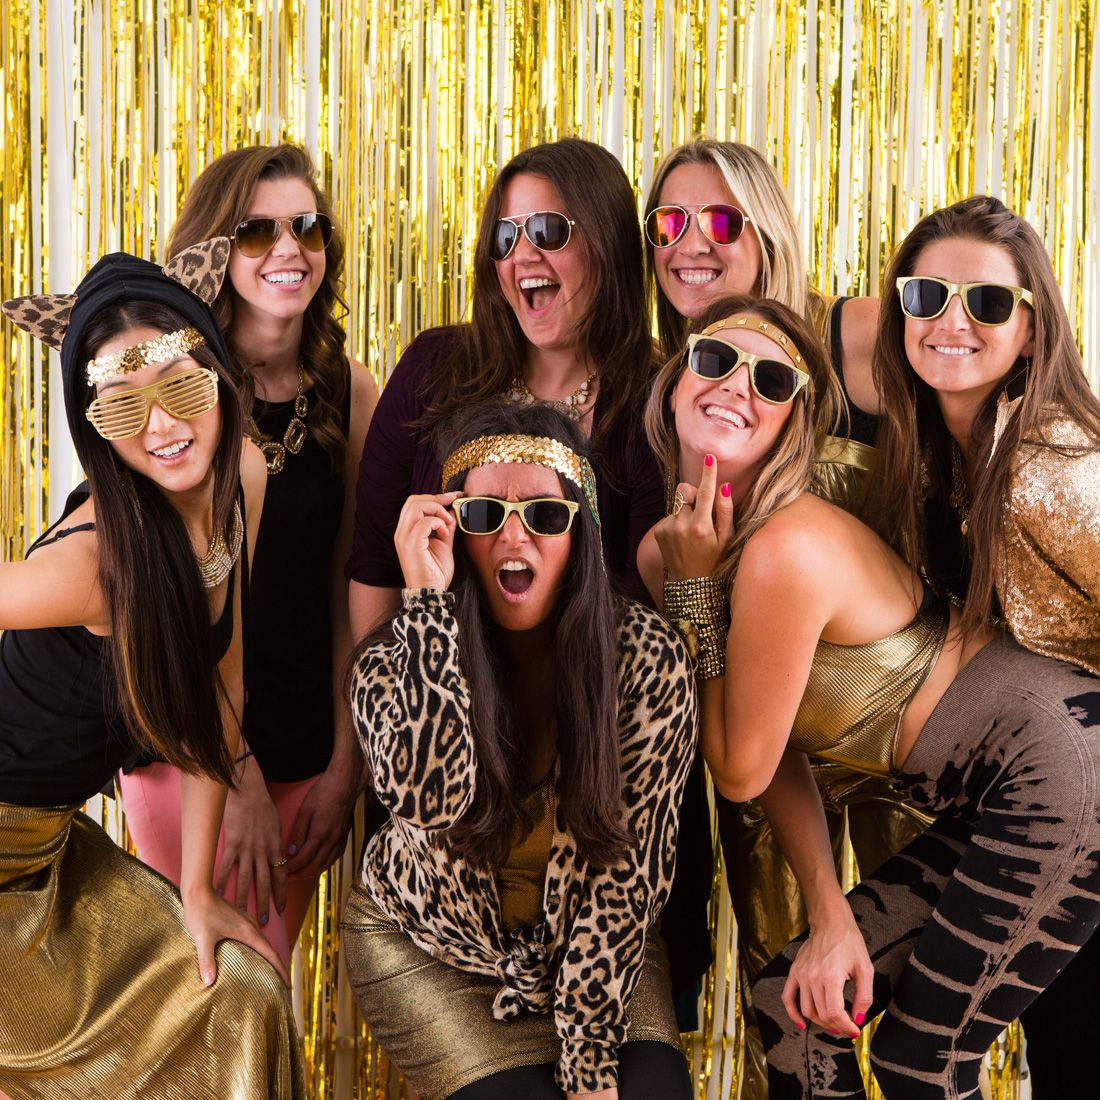 5 minute party trick the fastest diy photo booth setup ever photo 5 minute party trick the fastest diy photo booth setup ever solutioingenieria Images